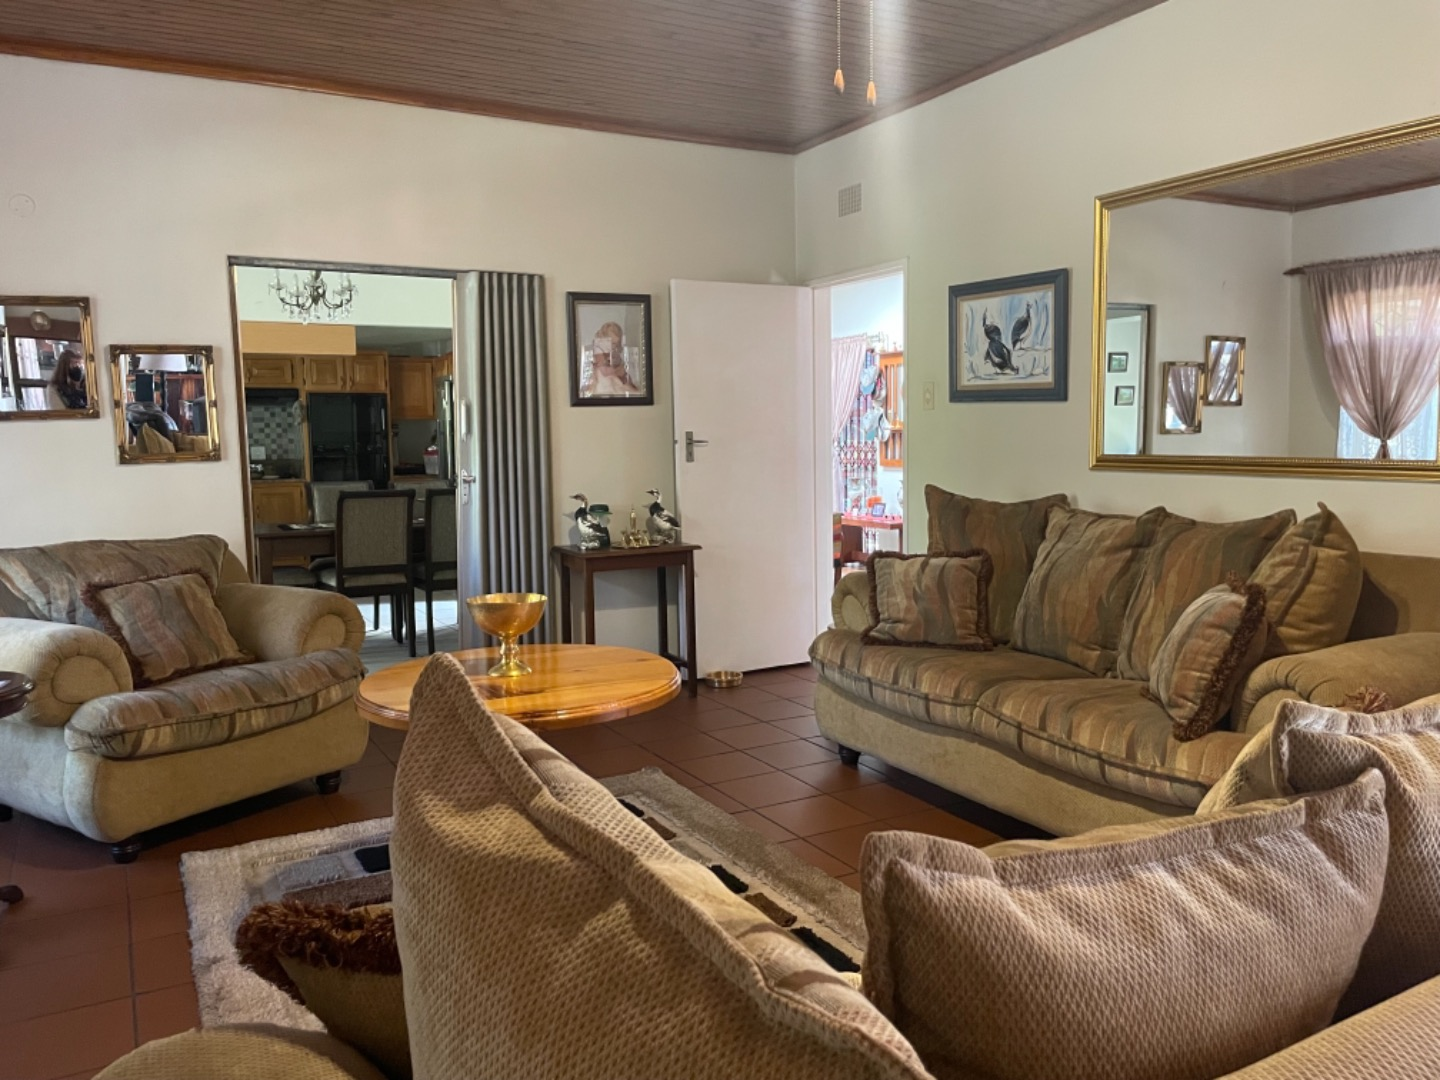 4 Bedroom House For Sale in Clubville